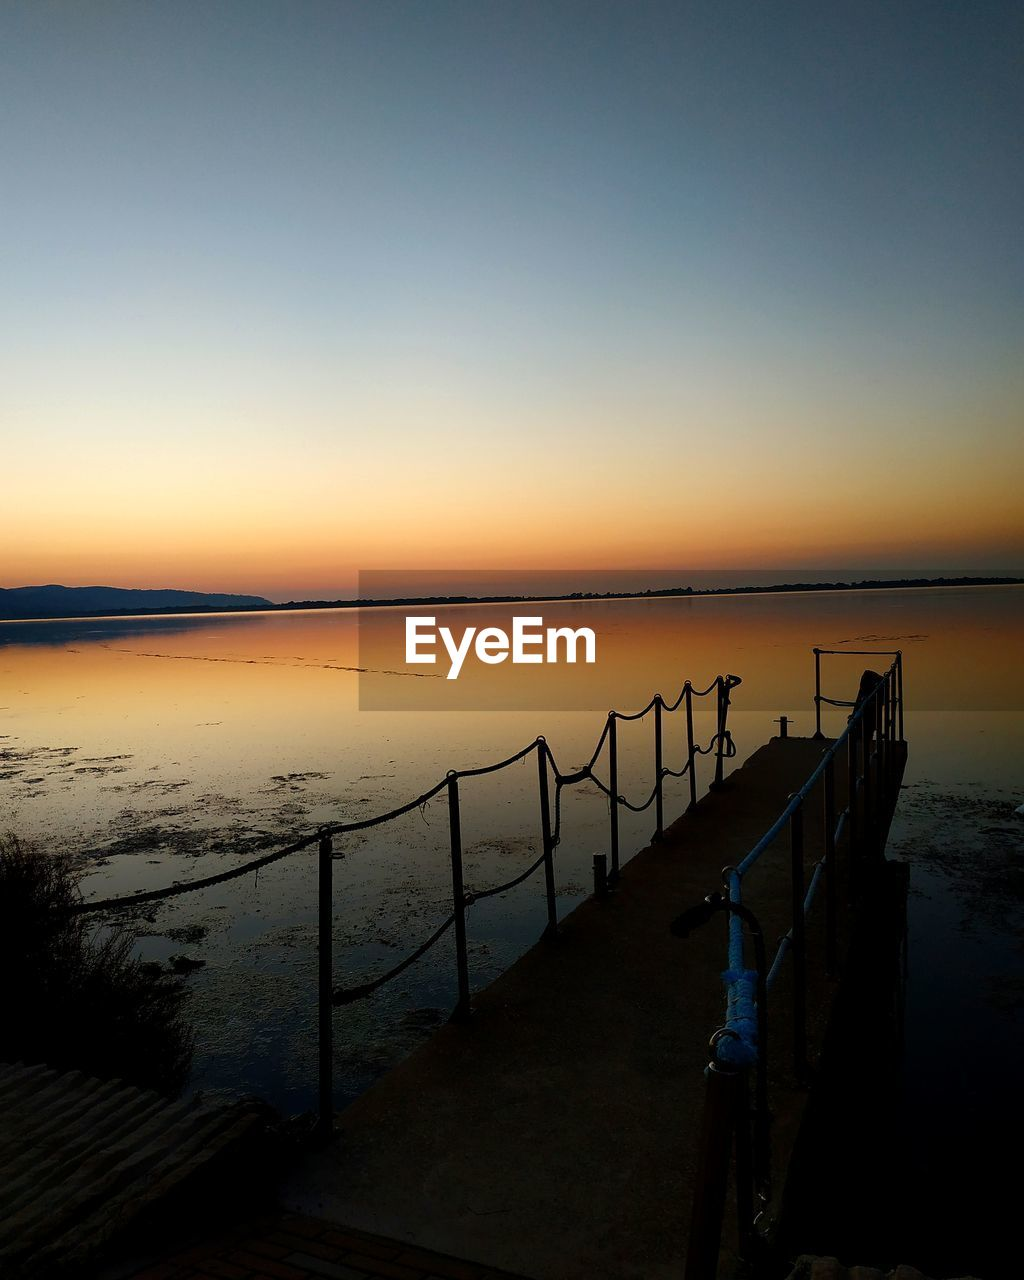 sky, sunset, water, scenics - nature, tranquility, tranquil scene, railing, beauty in nature, sea, clear sky, nature, copy space, idyllic, beach, non-urban scene, no people, orange color, horizon, outdoors, wooden post